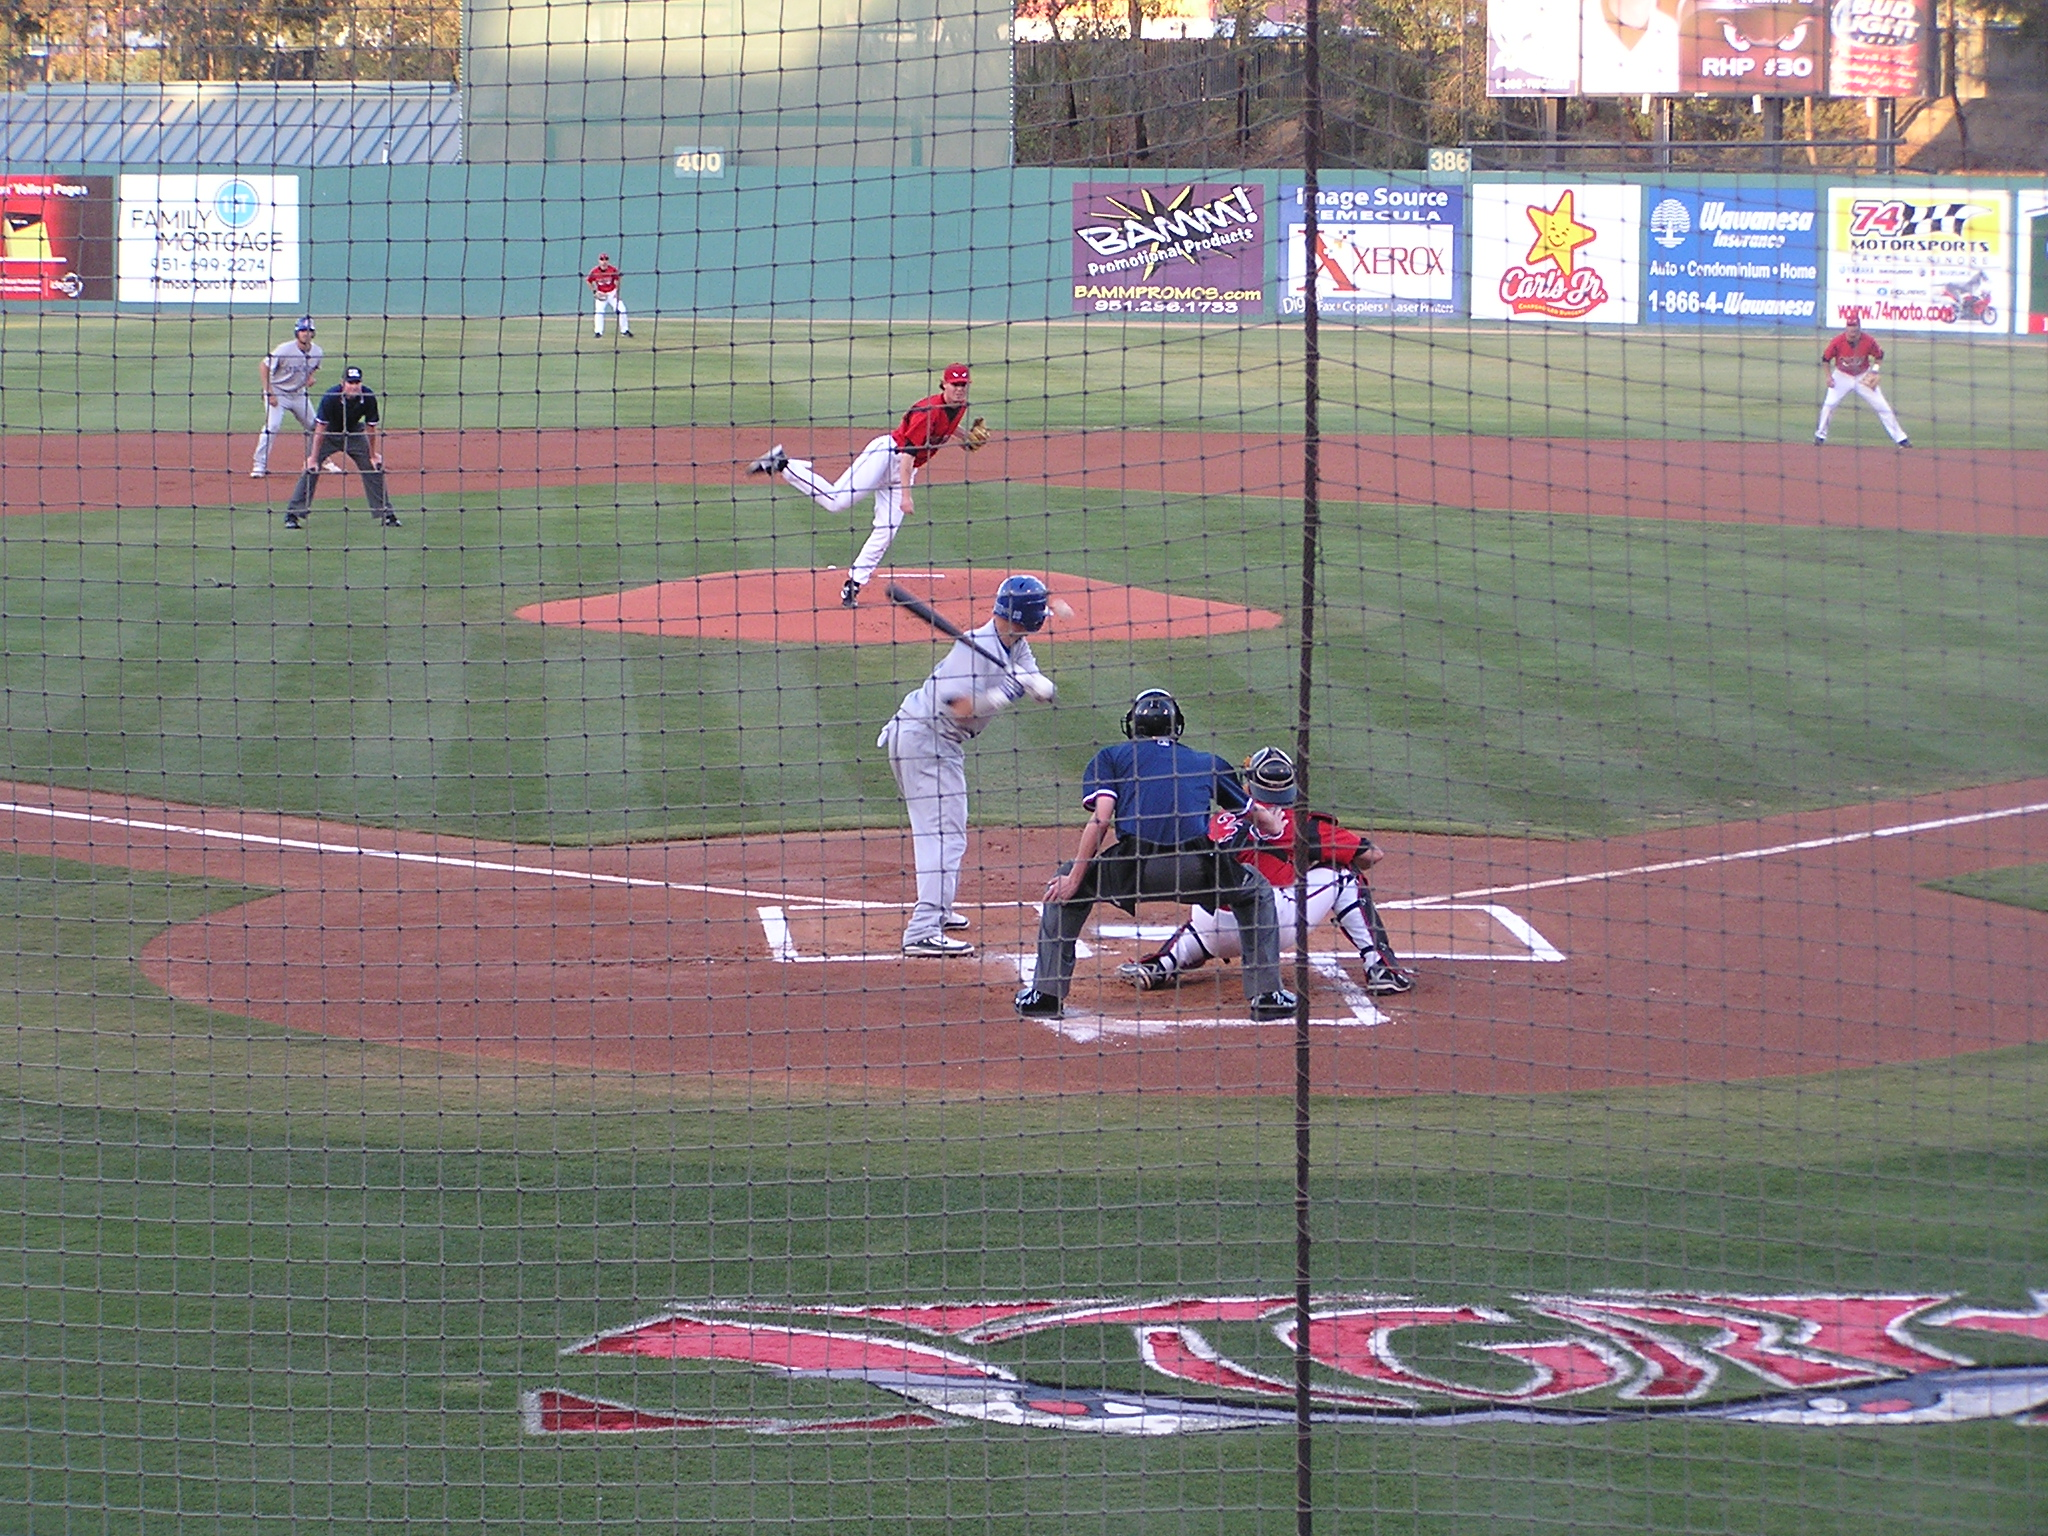 Game Action at Lake Elsinore, California